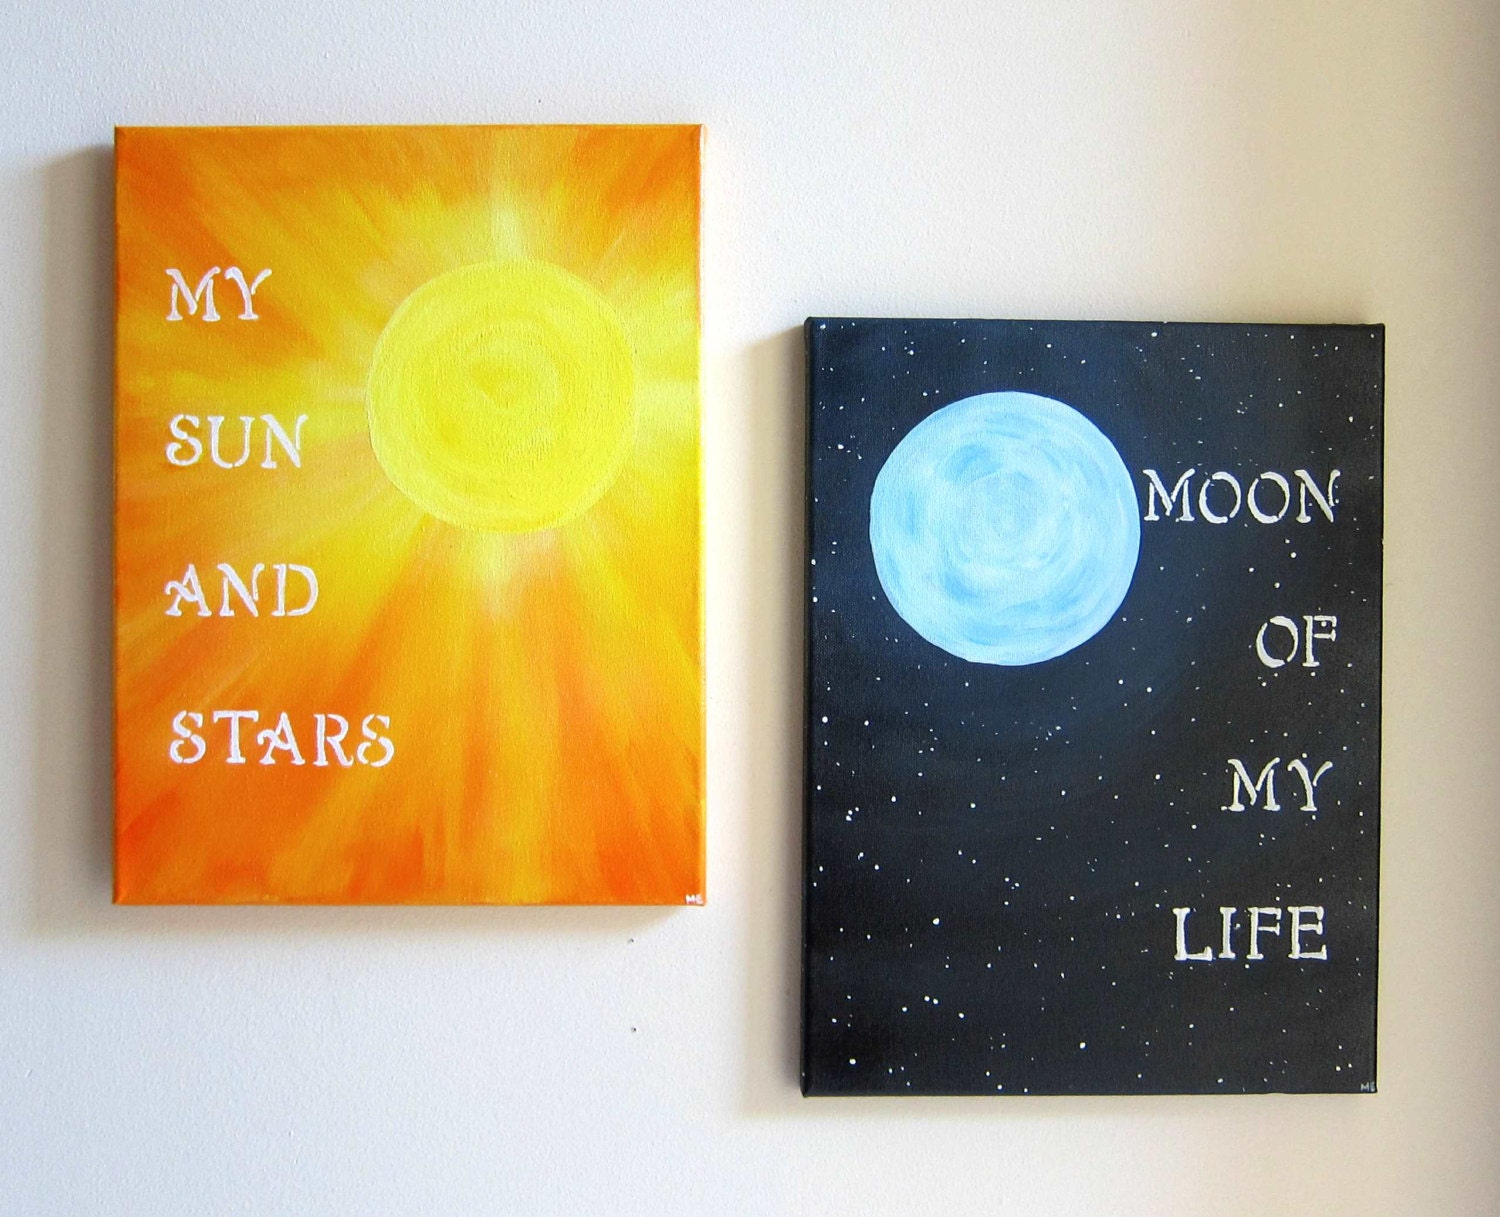 Life Canvas Quote Game Of Thrones Original Painting Set My Sun And Stars